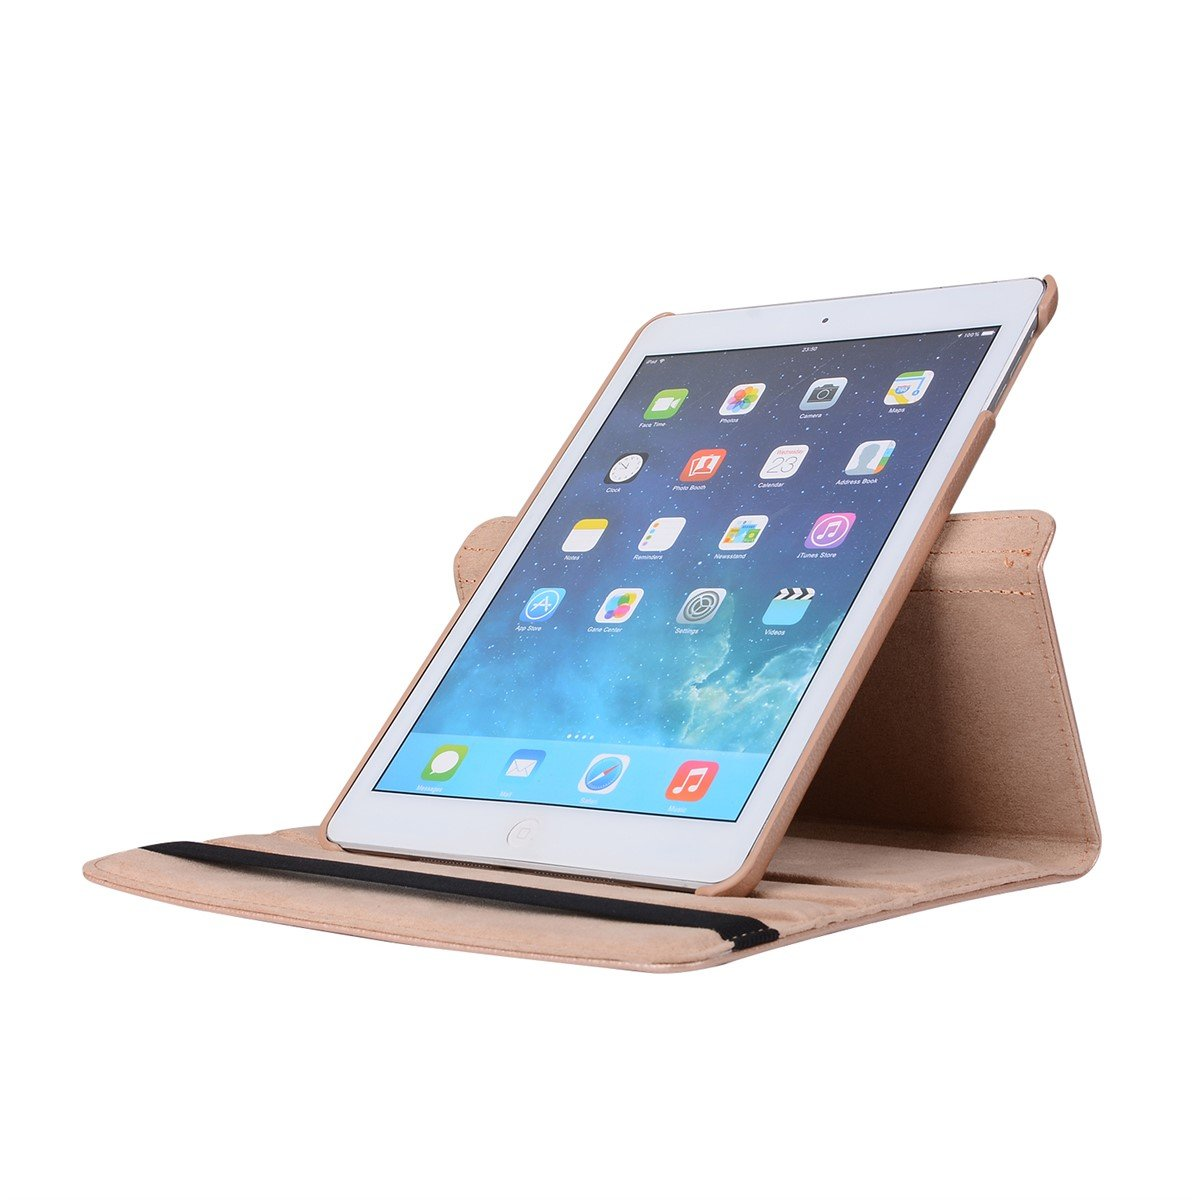 inShang Case for iPad 2 iPad 3 iPad 4 Premium PU Leather Multi-Function Stand Cover 360 degree Rotation With Auto Sleep Wake Function+1pc High end class business stylus Pen